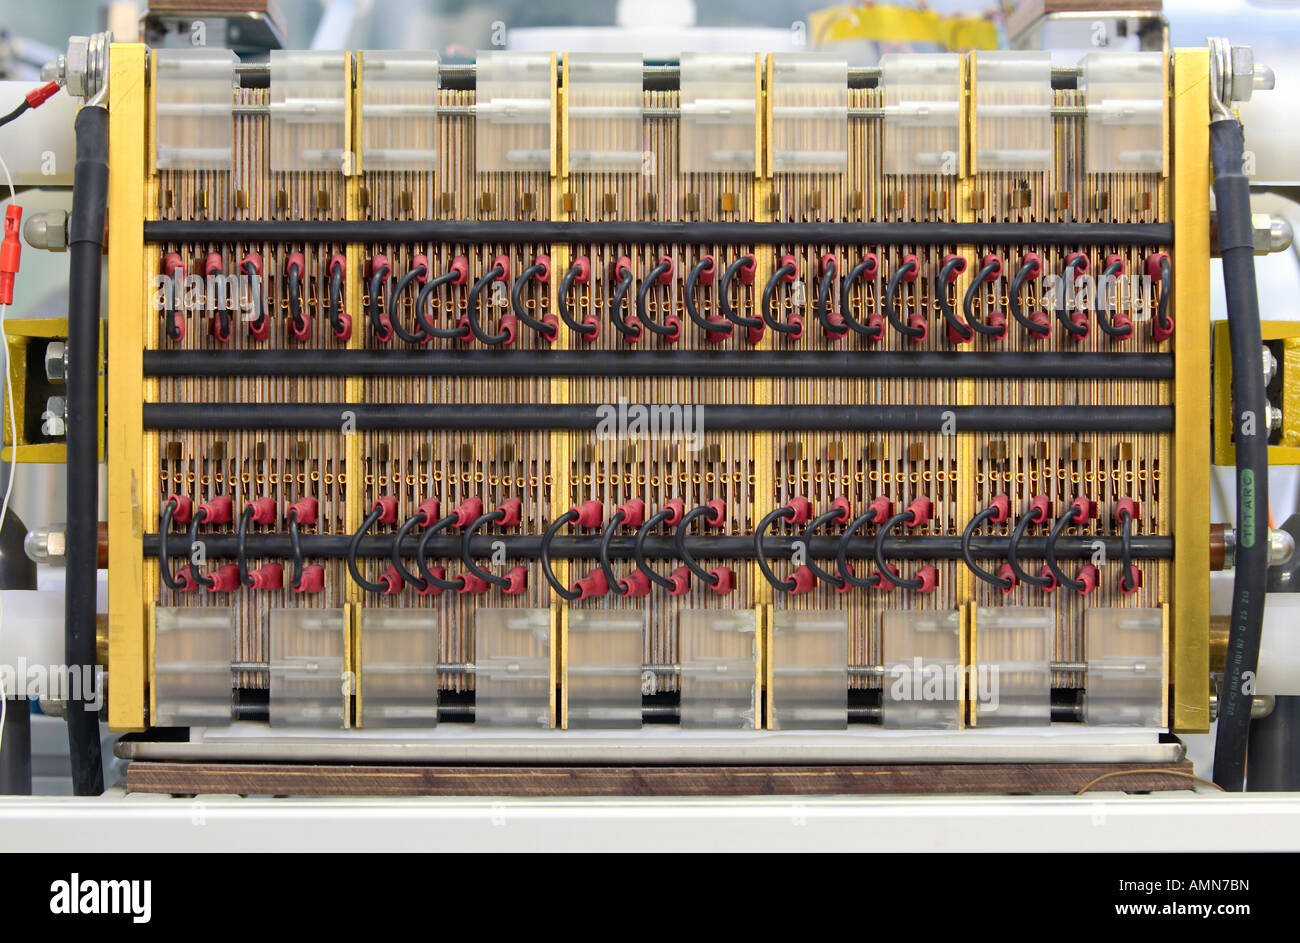 A fuel cell stack, Juelich, Germany - Stock Image